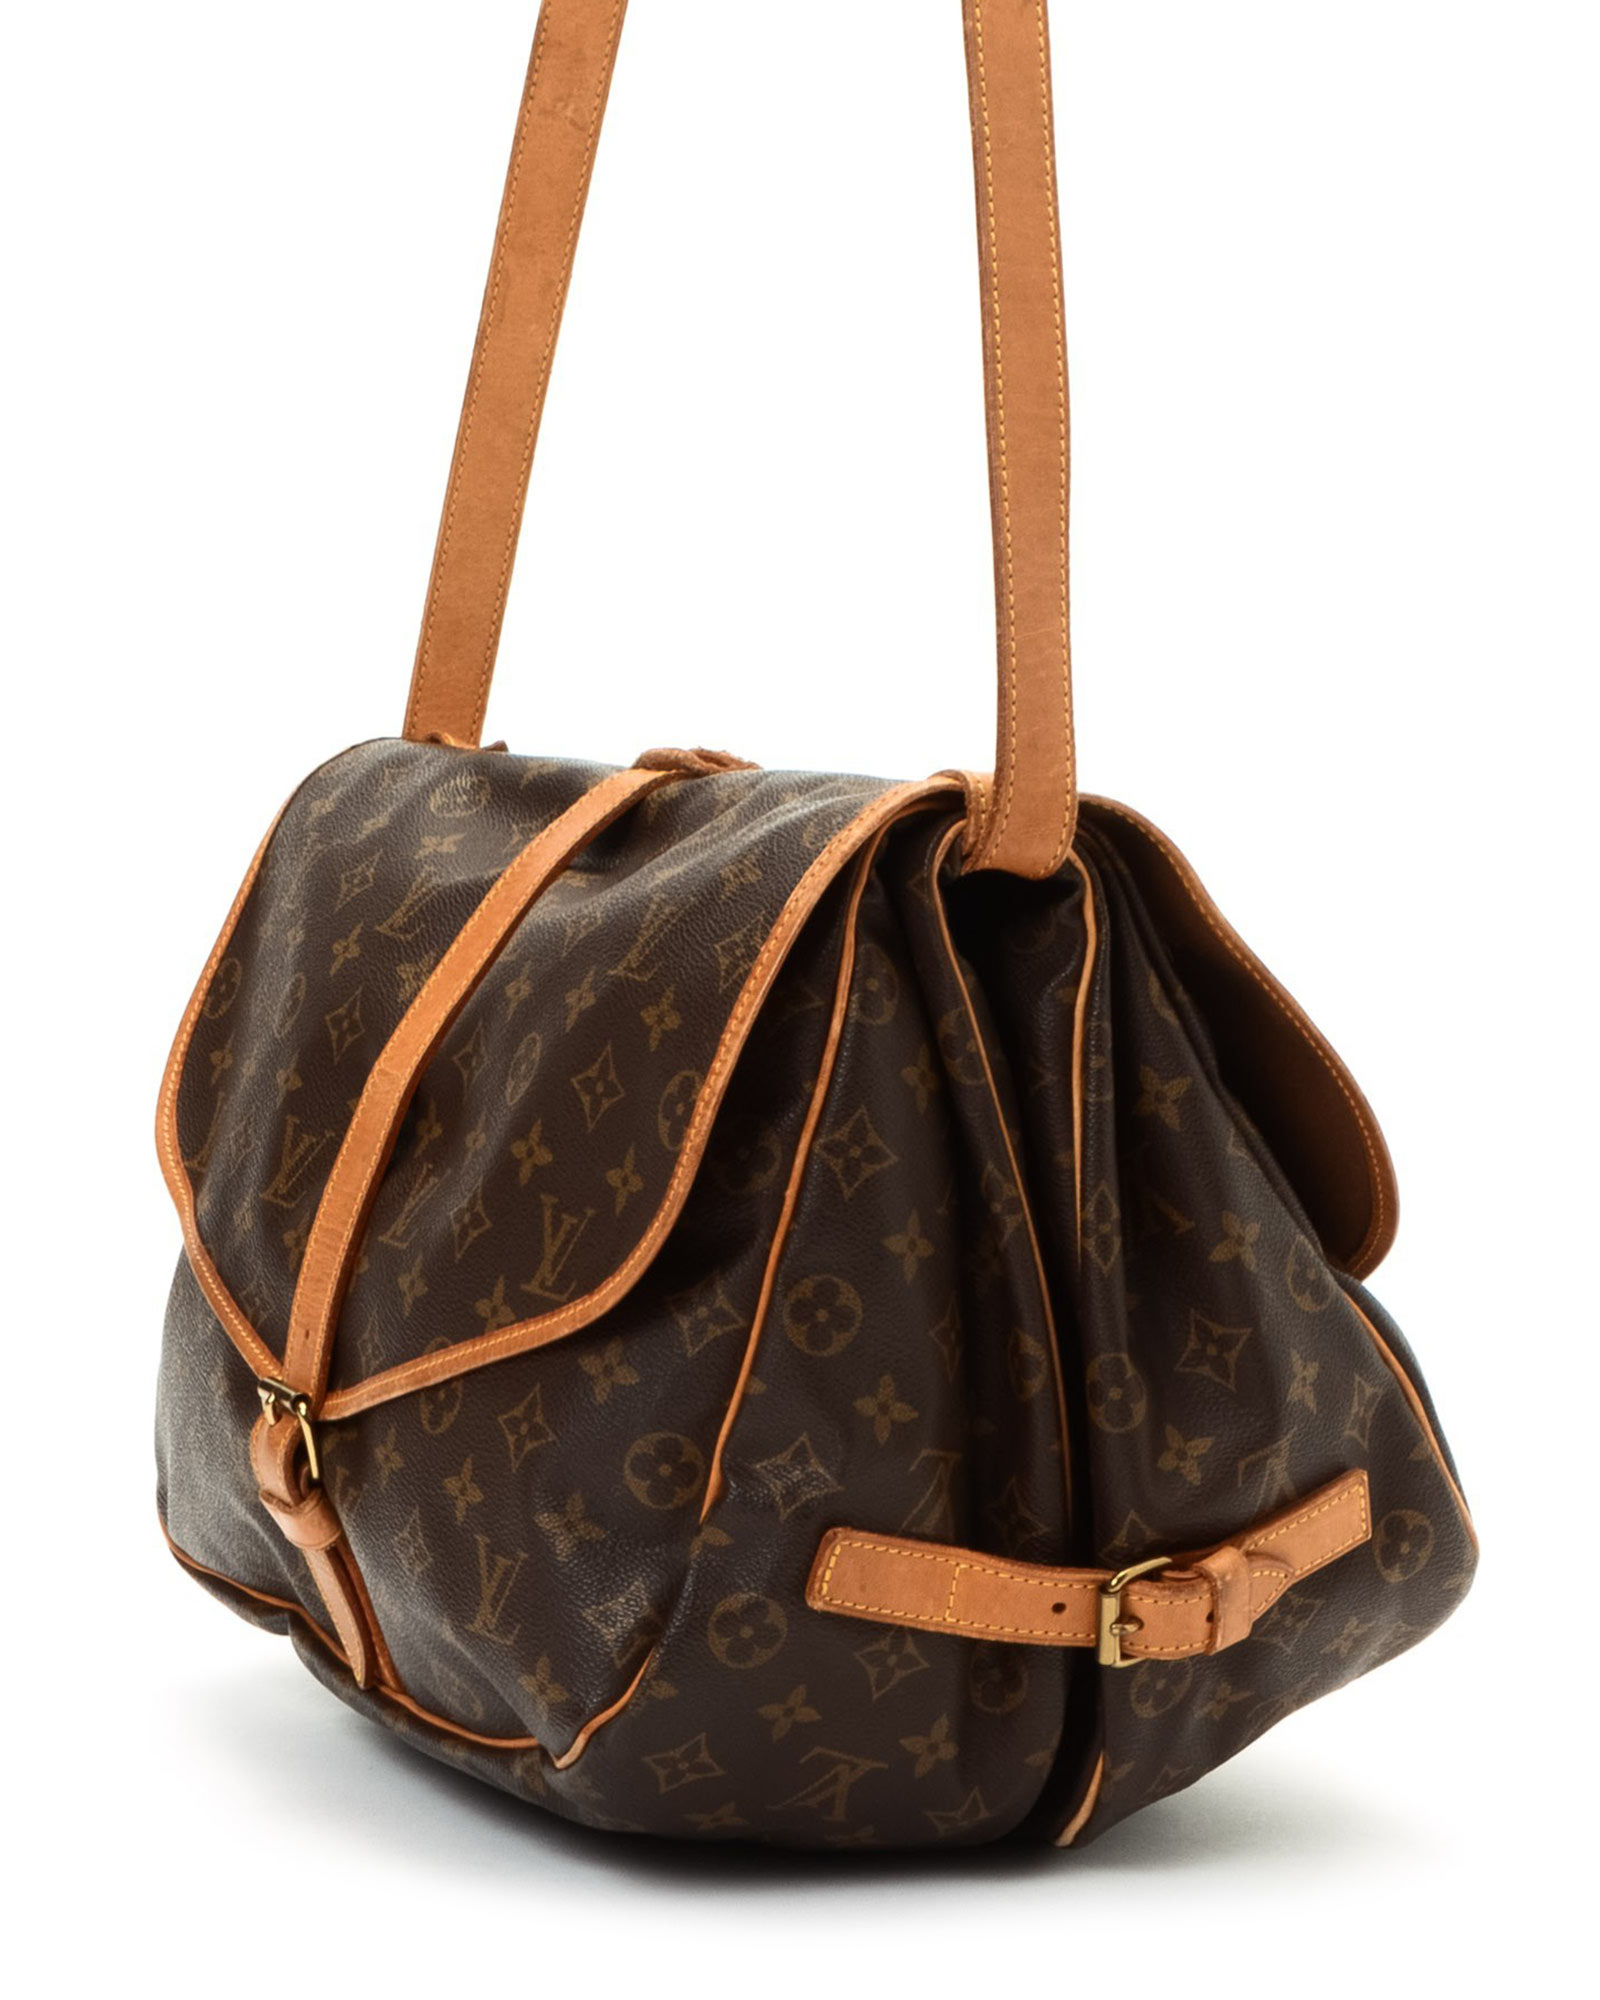 lyst louis vuitton messenger bag vintage in brown for men. Black Bedroom Furniture Sets. Home Design Ideas